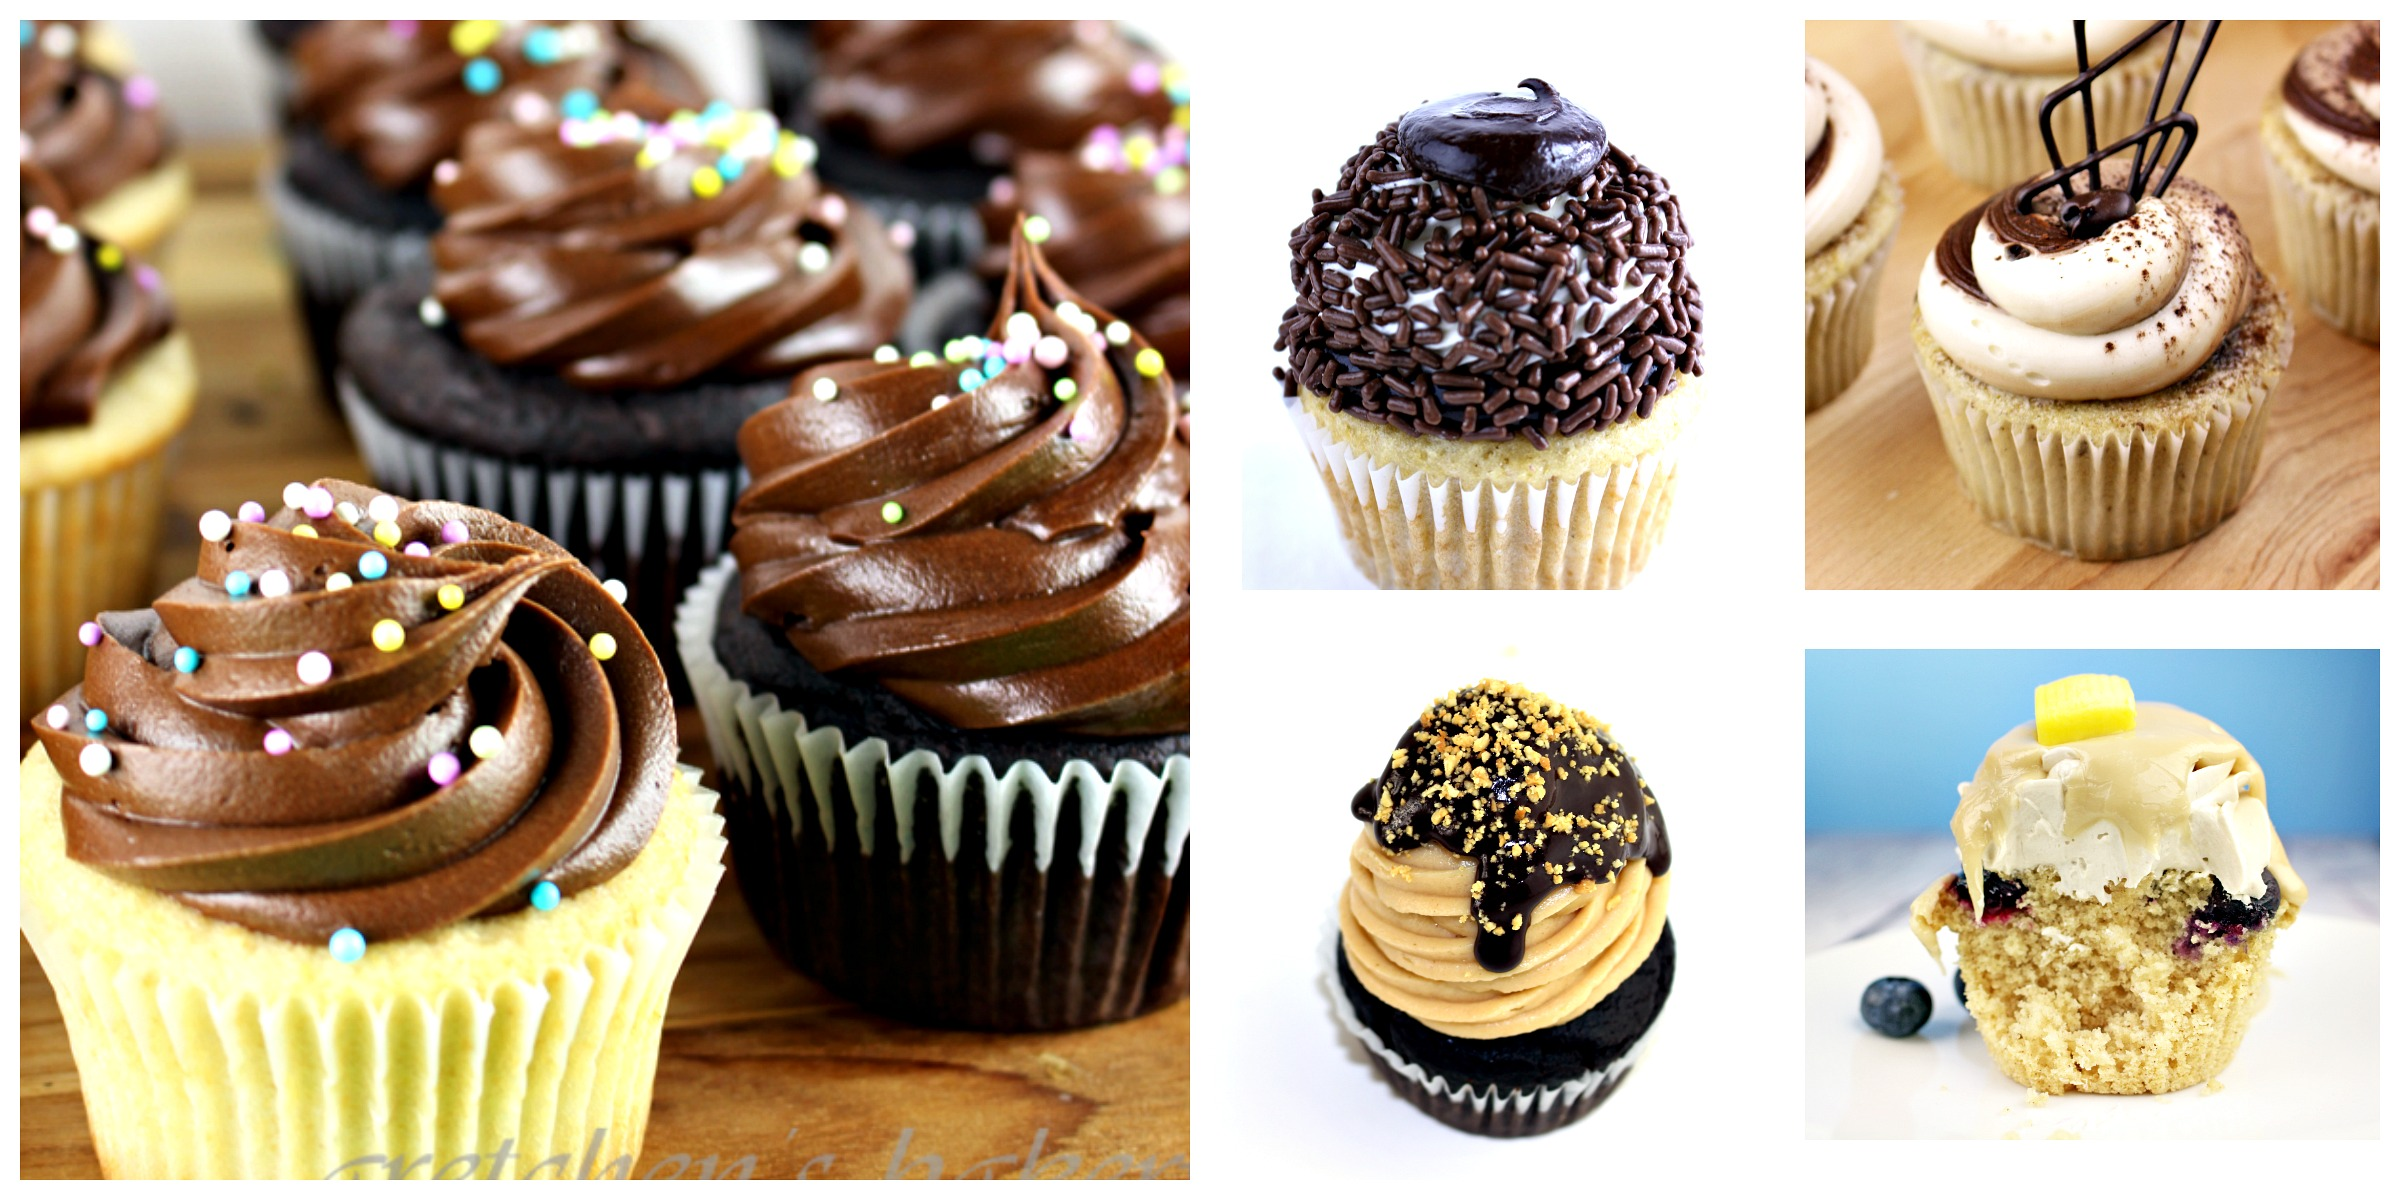 Five Cupcake Recipes You Won't Believe are Vegan!